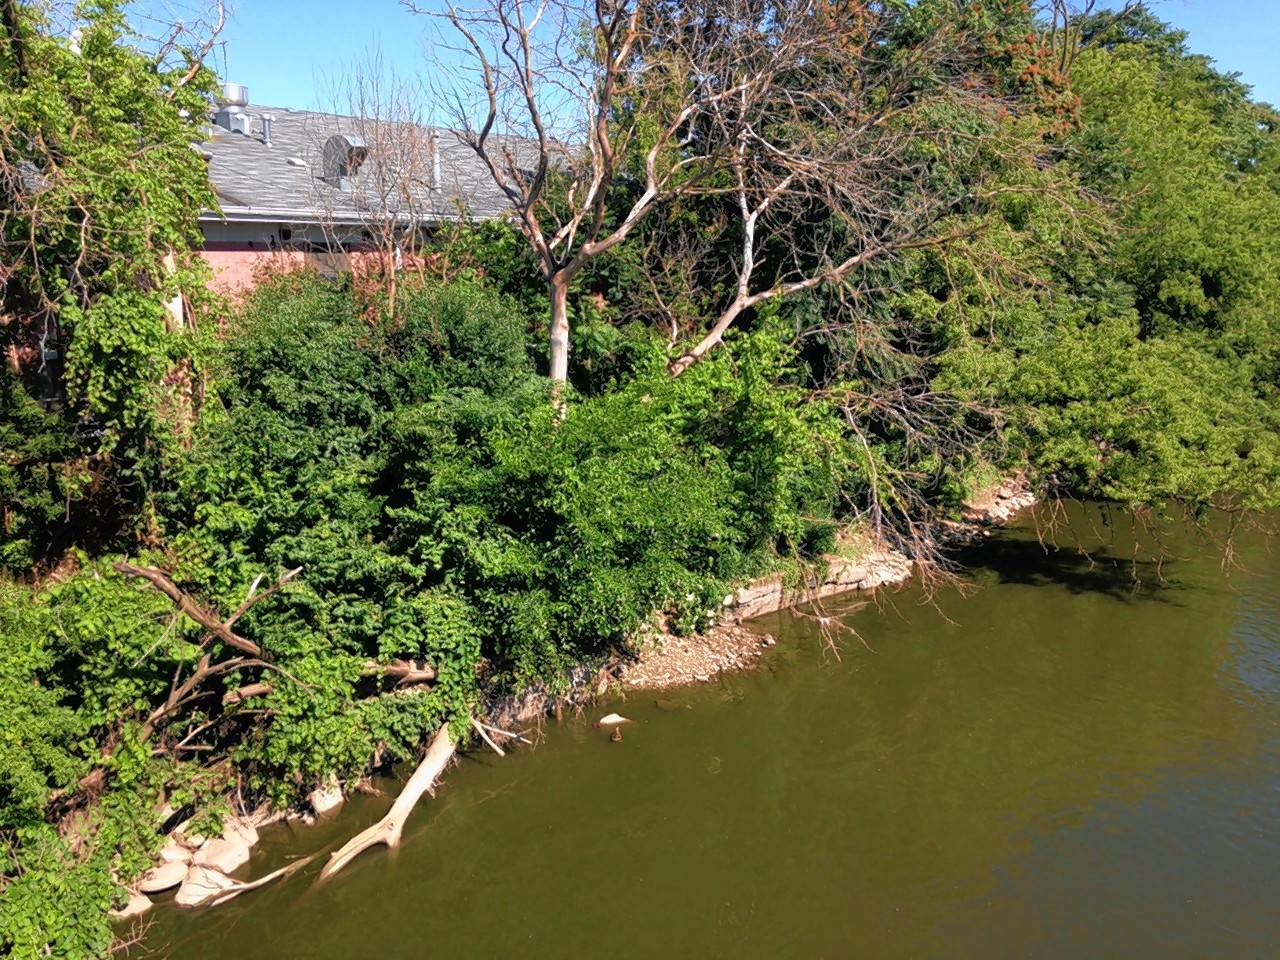 Fixing erosion along Batavia's riverbank may cost up to $1.5 million